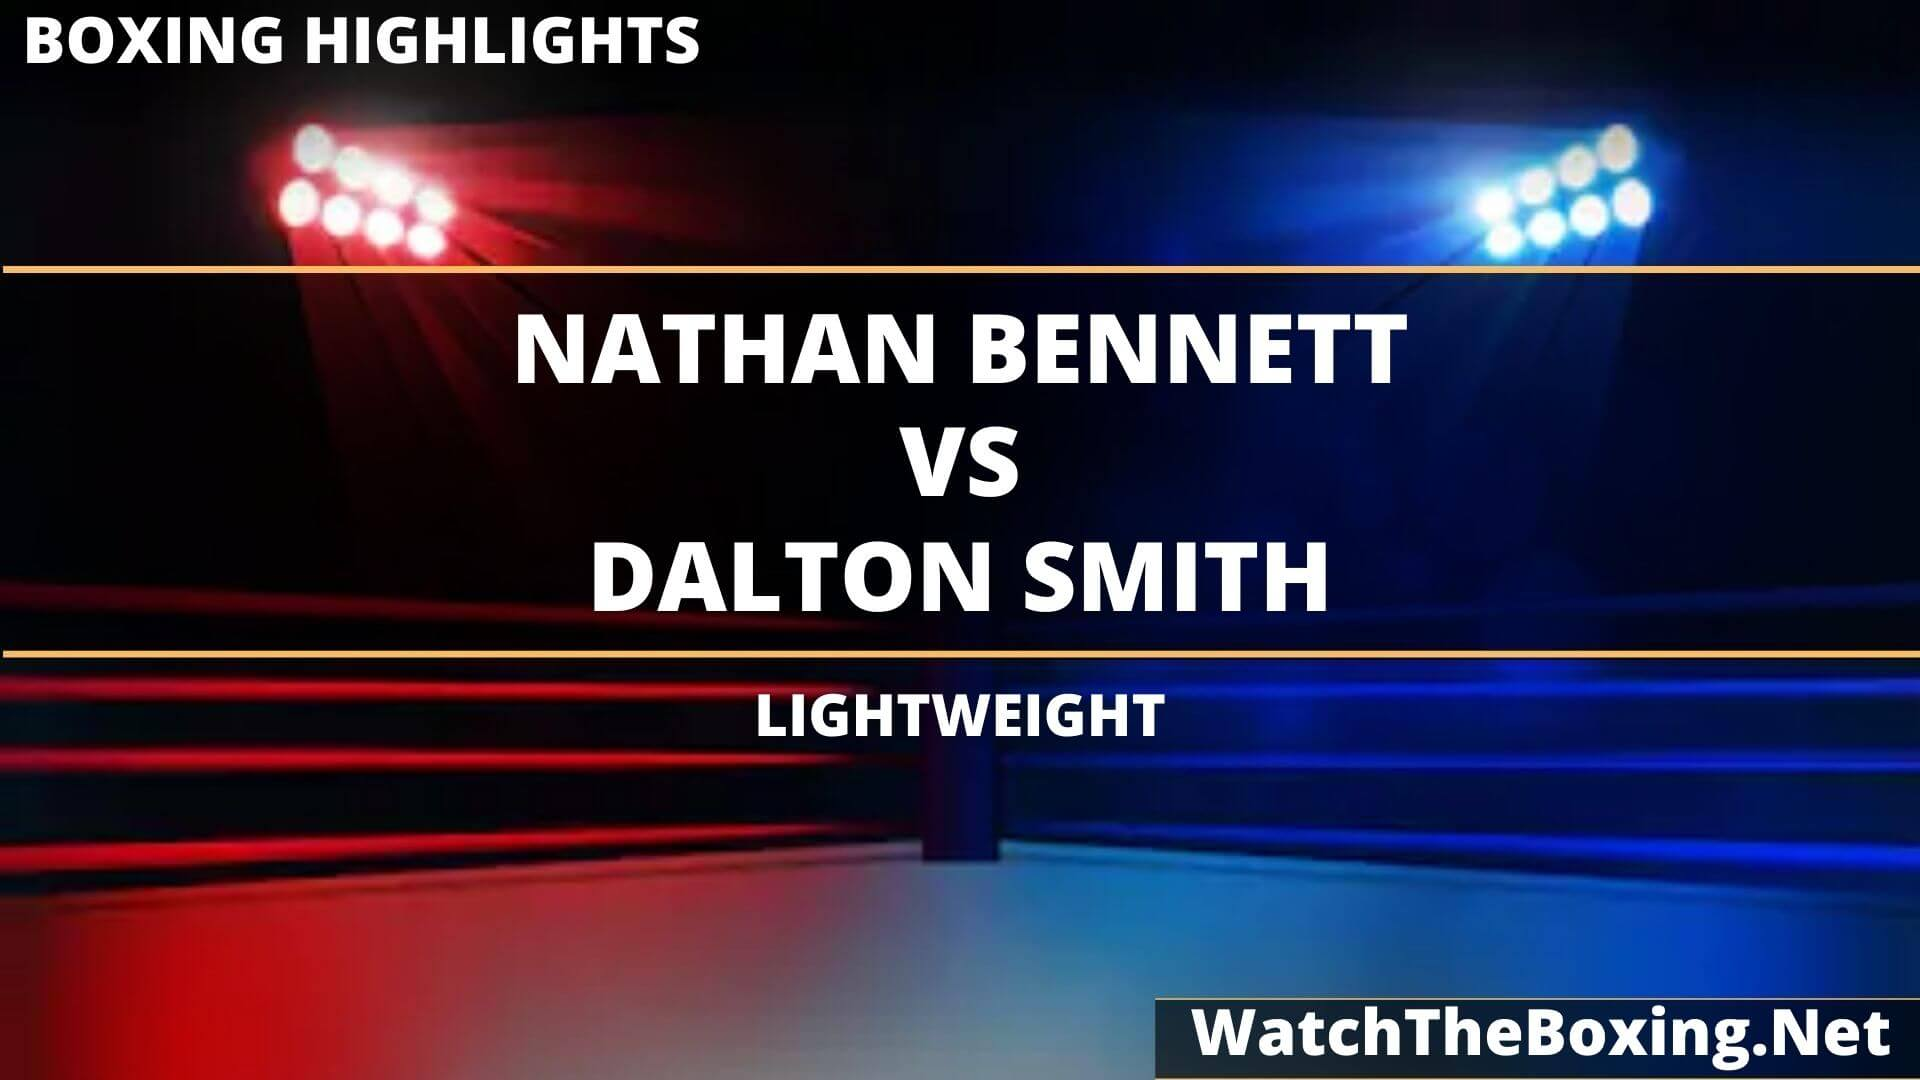 Nathan Bennett Vs Dalton Smith Highlights 2020 Lightweight